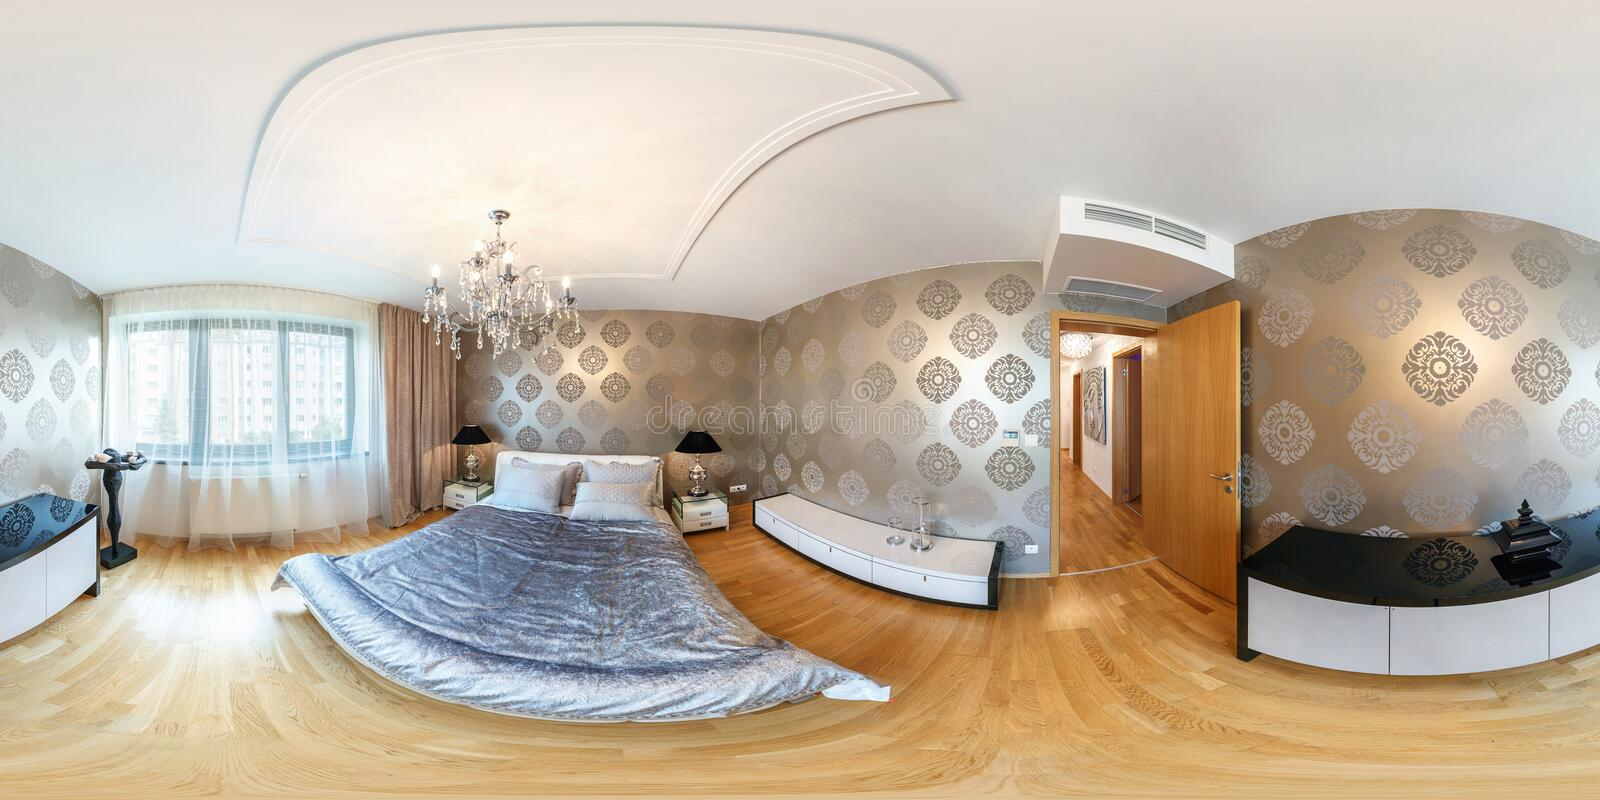 PRAHA , CZECH REPUBLIC - JULY 26, 2013: Modern loft apartment interior, bedroom, hall, full 360 degree panorama in equirectangular. Spherical equidistant royalty free stock images